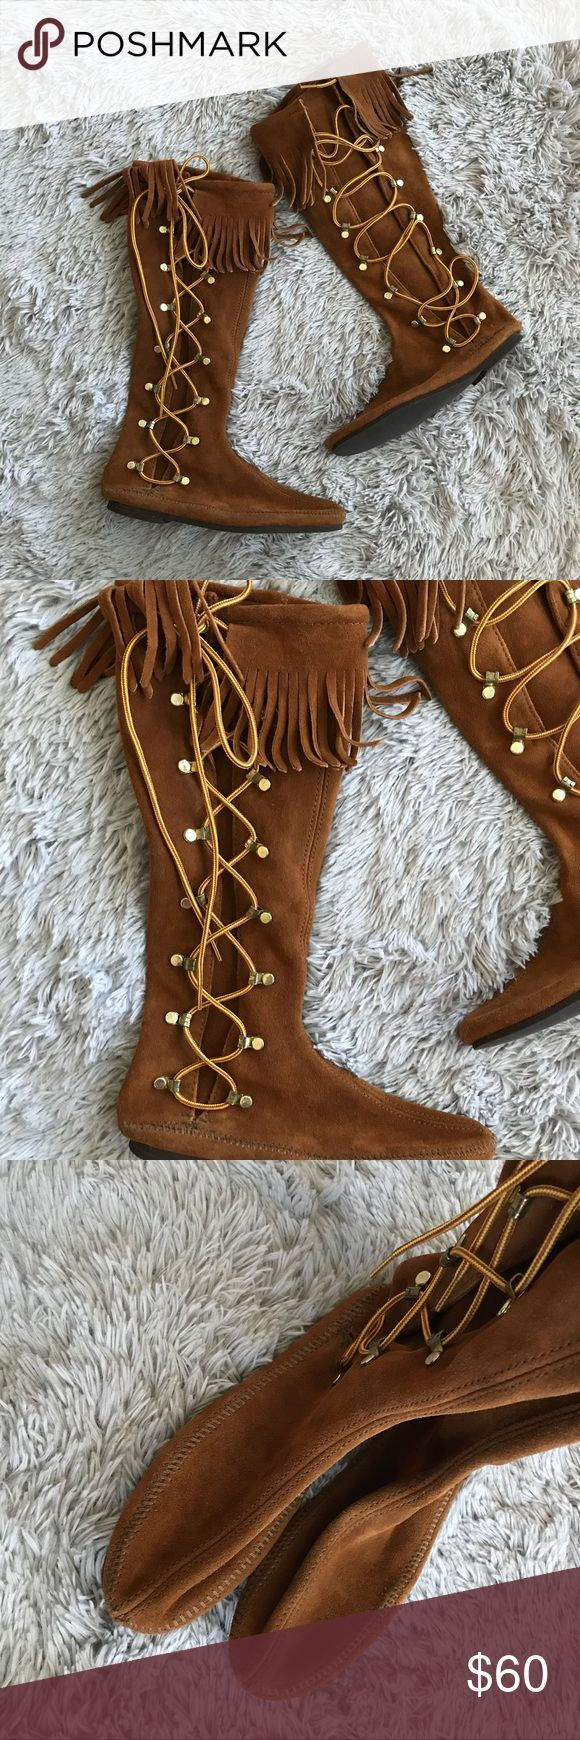 Minnetonka suede fringe side lace boots Amazing hippie boho style boots. Good used condition! Soft cushioned sole, genuine suede. Bundle for a disc